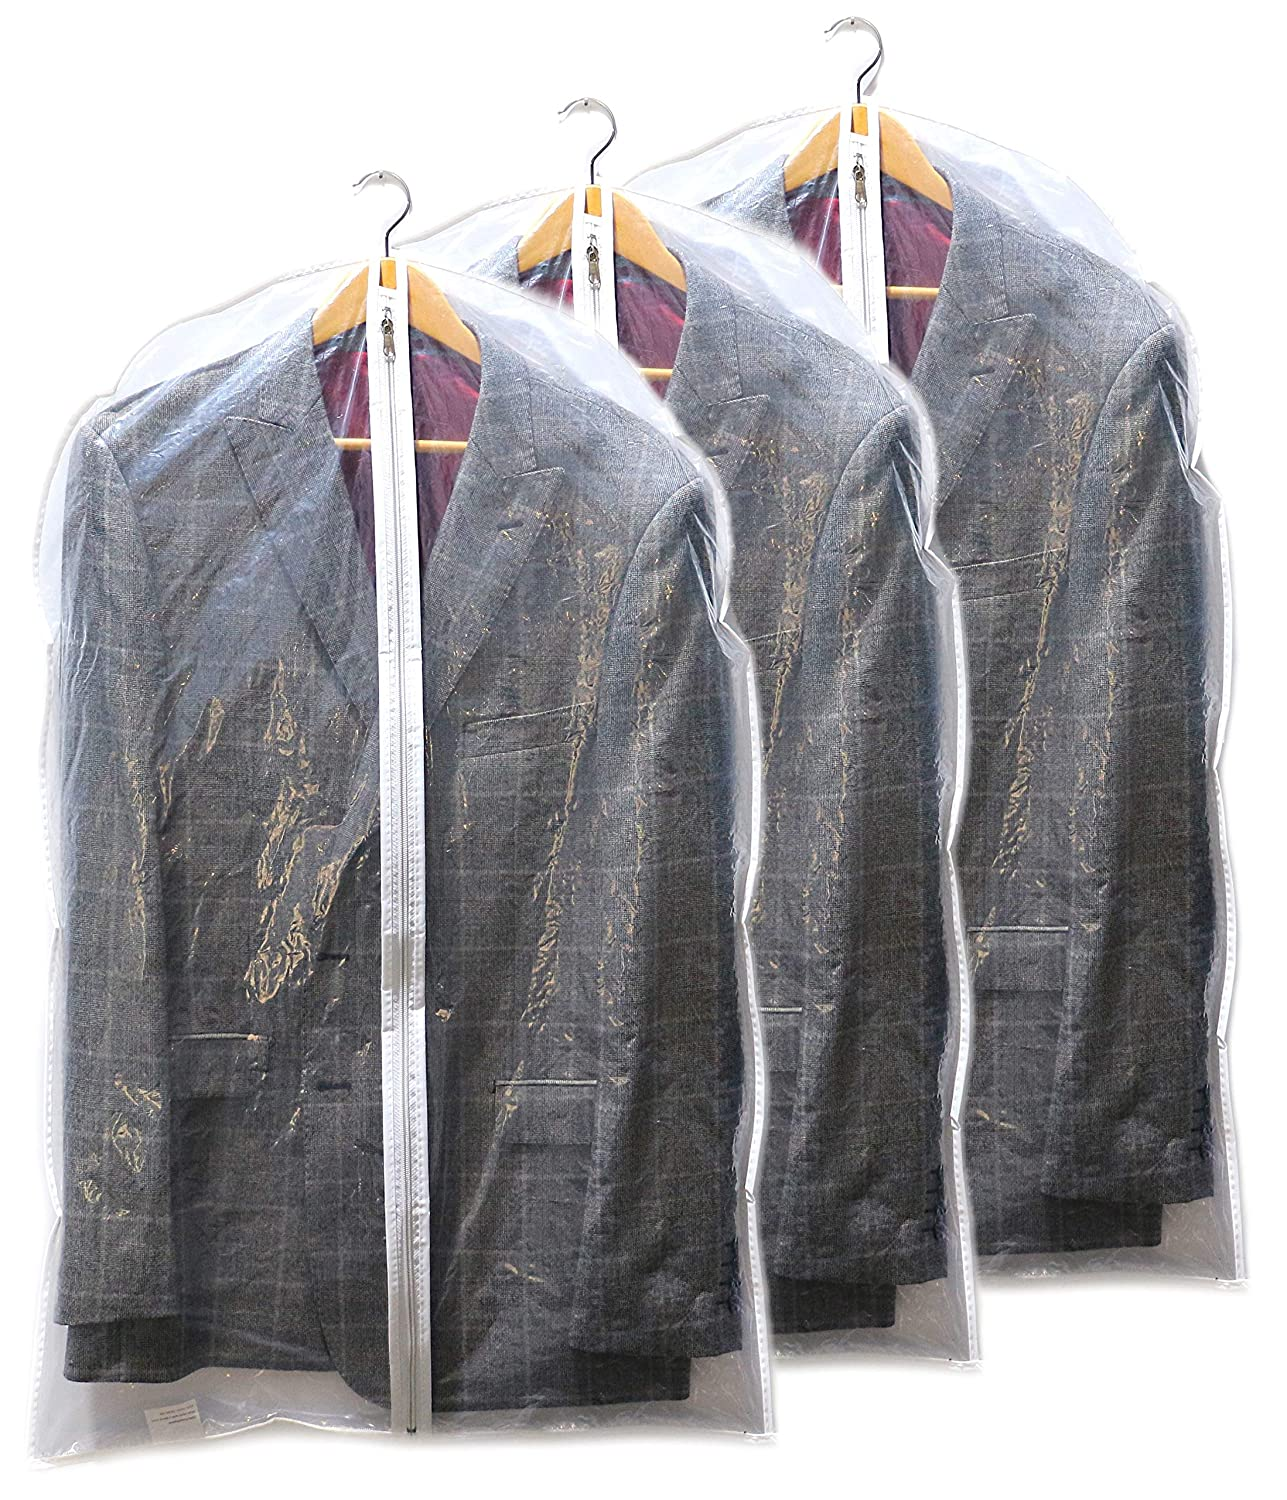 Suit Cover Garment Bags, Shirt Covers, Pack of 3, Clear, Clothes Bags, Shower Proof with Large Zip Opening Clay Roberts